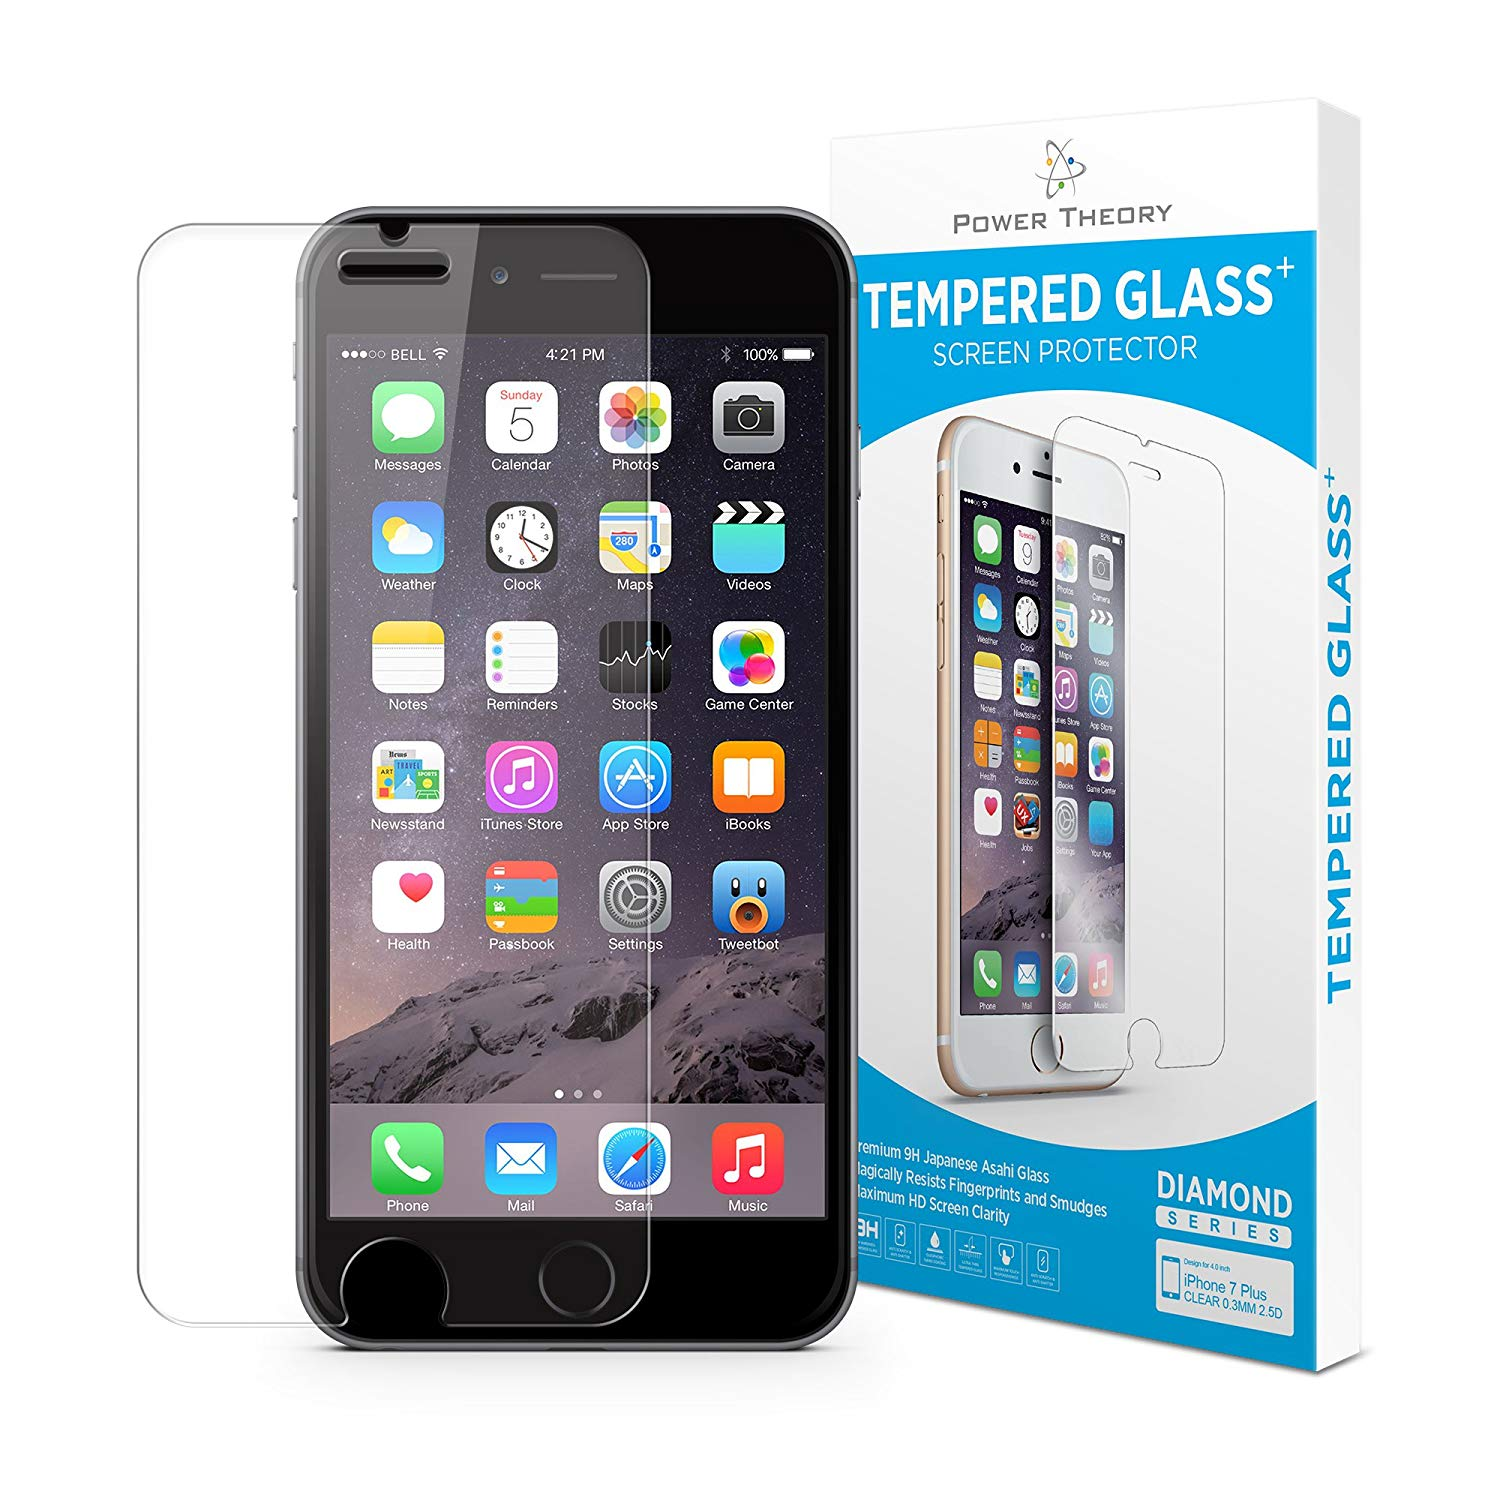 Power Theory iPhone 8 Plus Screen Protectors [1-Pack] Premium Tempered Glass Screen Protector with Easy App Install Kit for Apple iPhone8 Plus